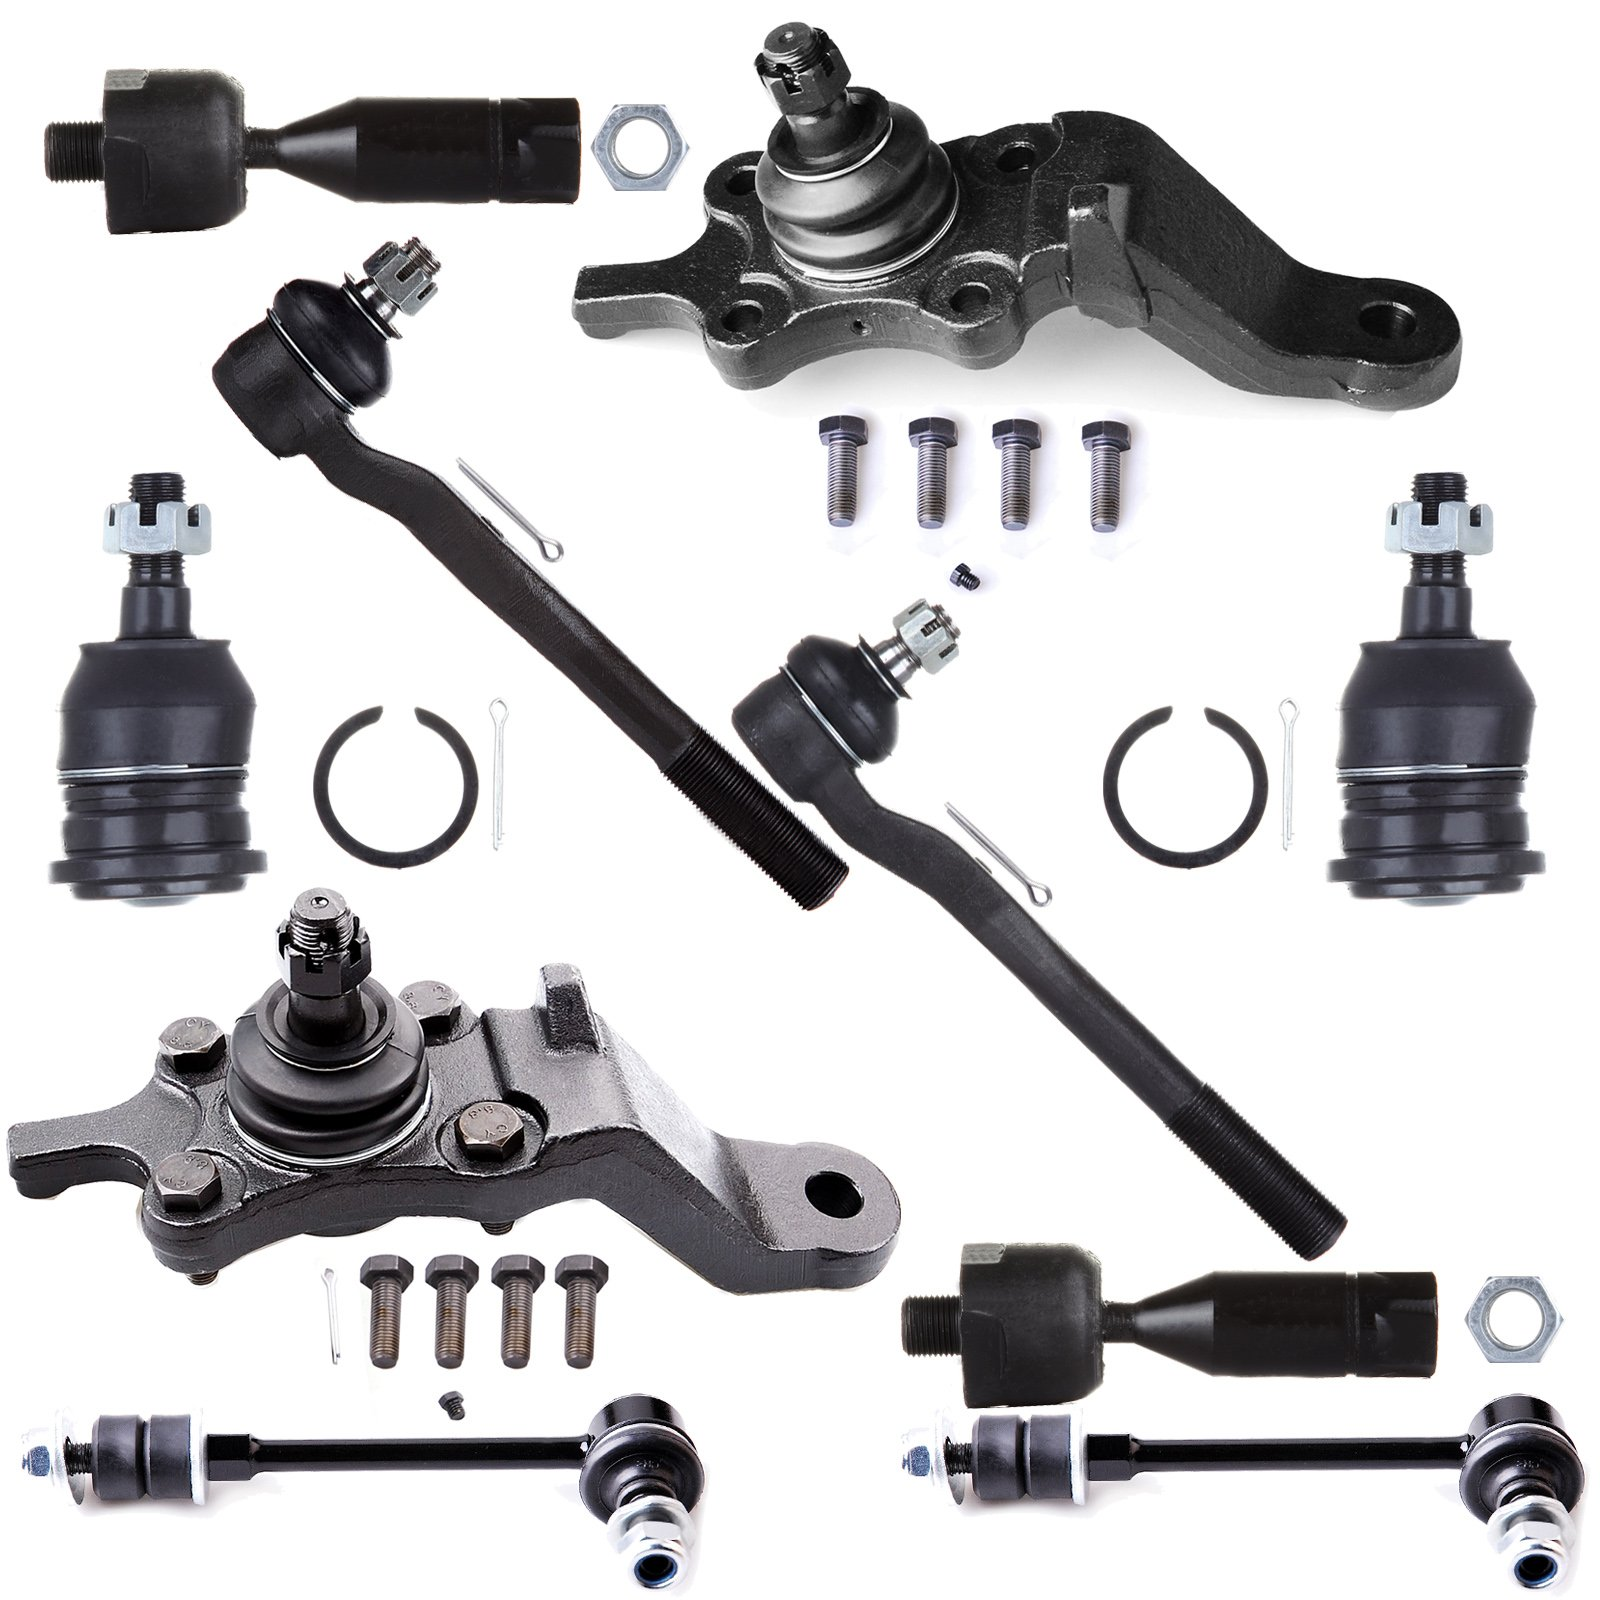 ECCPP Front Ball Joint Tie Rod End Sway Bar Link Complete Kit for 1996-2002 Toyota 4Runner (10Pcs)